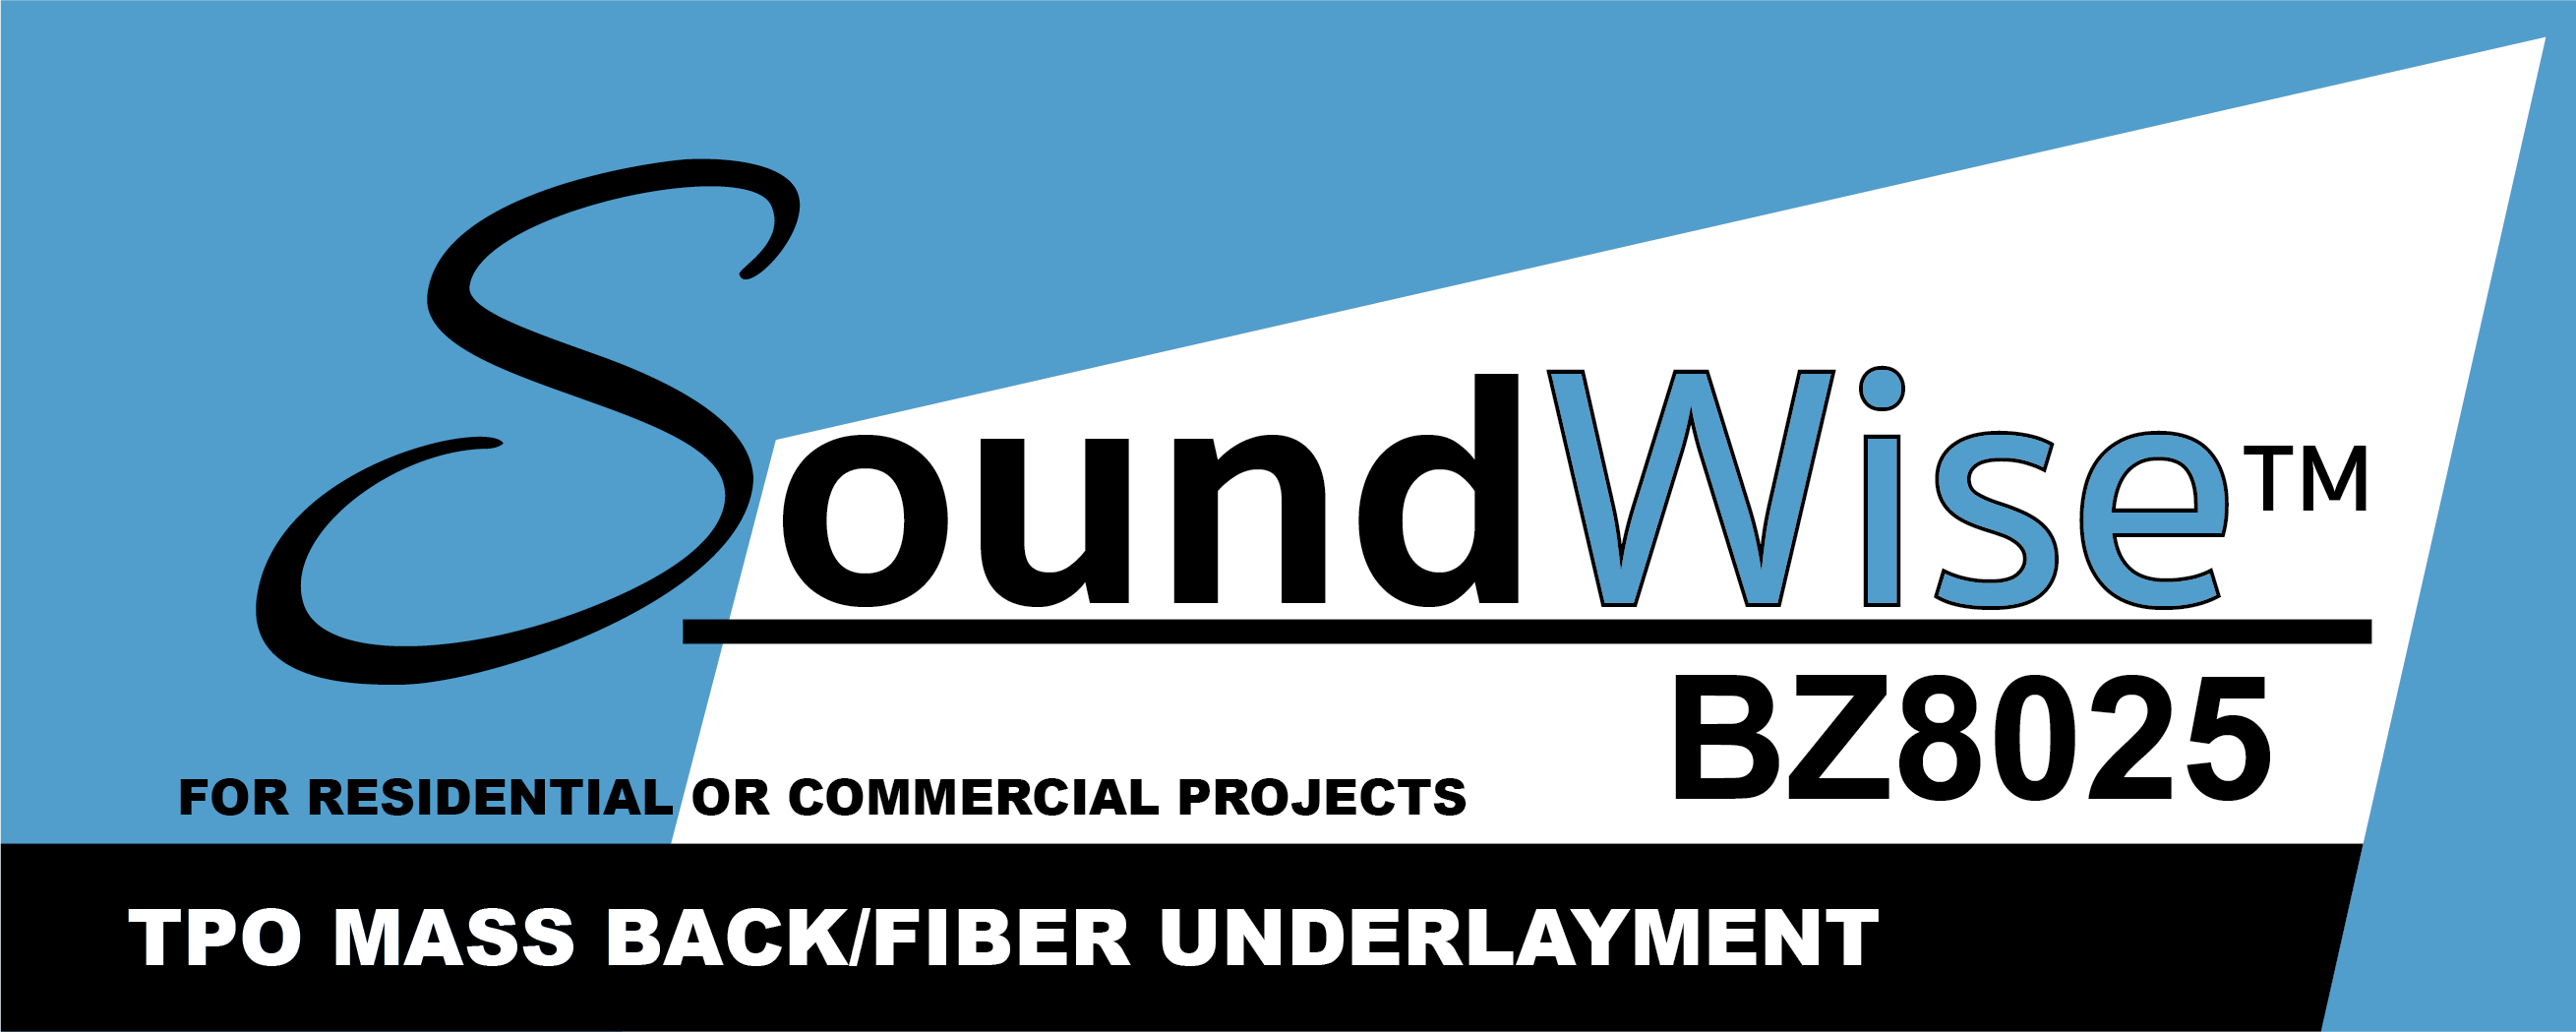 Soundwise™ TPO MASS BACK/FIBER UNDERLAYMENT